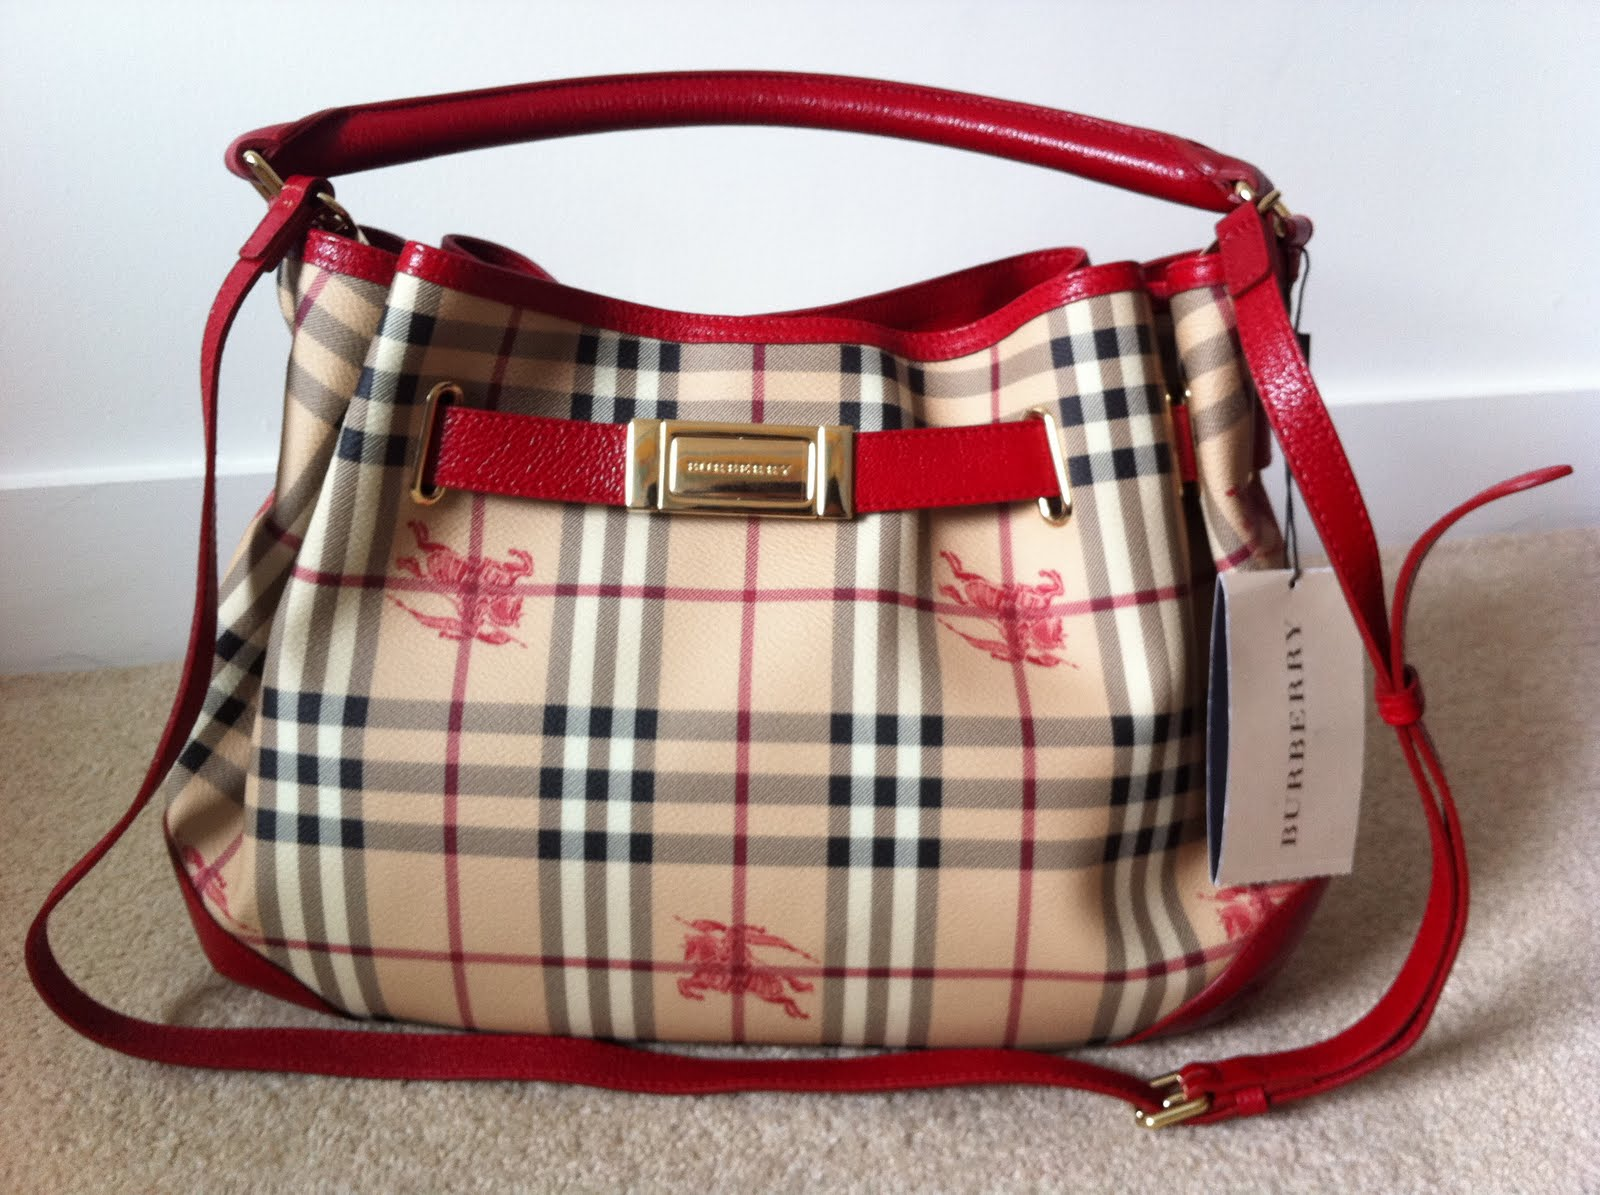 Discounted Genuine Handbags  (New) Authentic Burberry Hobo Bag For Sale 9038d741ea